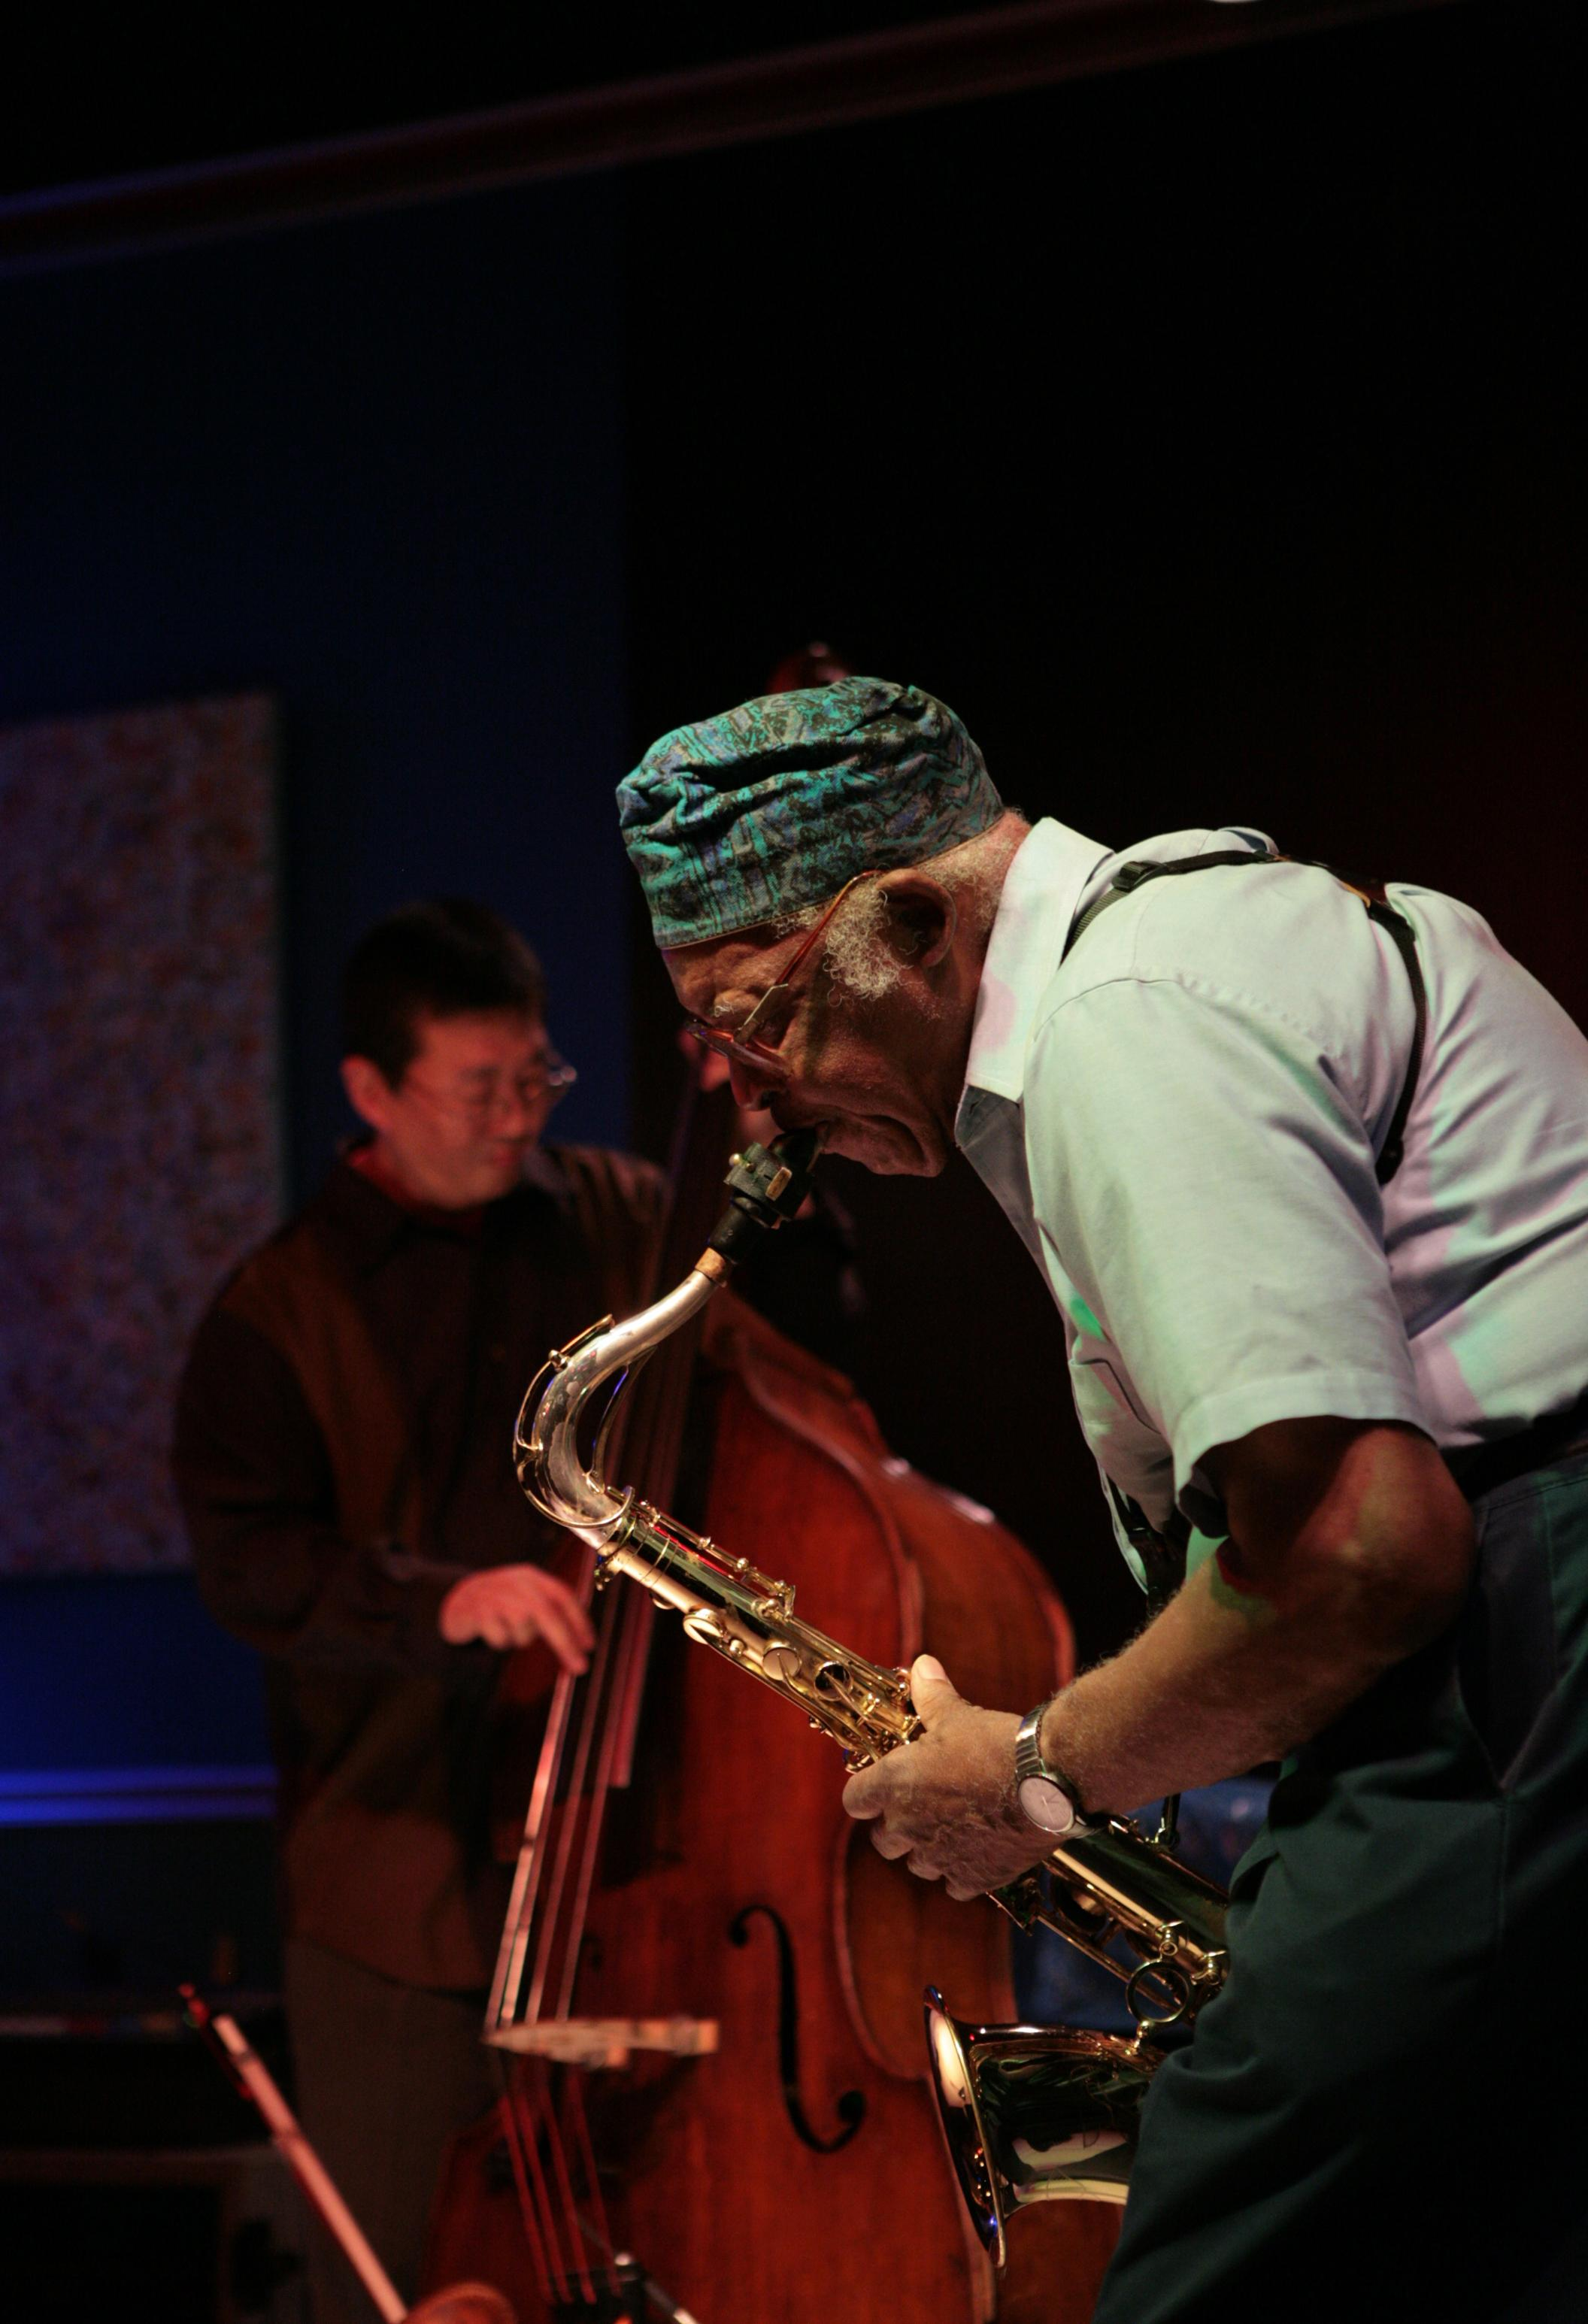 A person wearing a patterned green and blue cap bends forward playing a saxophone, while another person plays standing bass in the background.